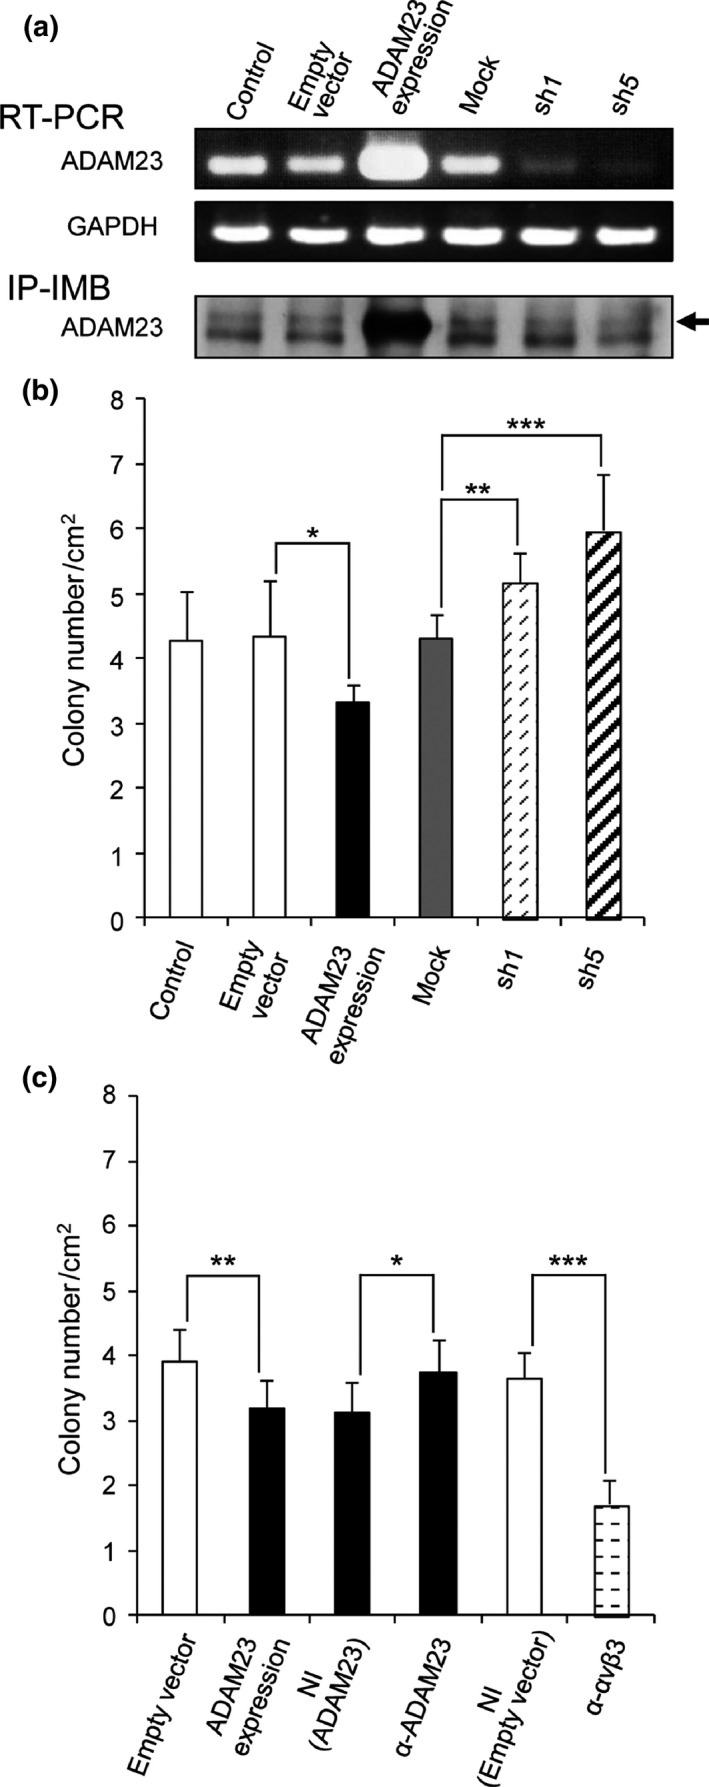 Effects of ADAM 23 expression, anti‐ ADAM 23 antibody and anti‐αvβ3 integrin antibody on colony formation. (a) Expression of ADAM 23 in A549 cells (control) or A549 transfectants with empty vectors, ADAM 23 expression vectors, non‐targeting mock vectors or ADAM 23‐targeting lentiviral vectors (sh1 and sh5) by RT ‐ PCR and by immunoblotting of the immunoprecipitates ( IP ‐ IMB ). Arrow indicates ADAM 23 and the lower band is a non‐specific protein band. (b) Colony formation by control A549 cells (control) and A549 cells transfected with empty vectors, ADAM 23 expression vectors, non‐targeting vectors (mock) or ADAM 23‐targeting vectors (sh1 and sh5) was assayed ( n = 6). (c) Colony formation by A549 cells transfected with empty vectors or ADAM 23 expression vectors, ADAM 23 transfectants treated with non‐immune IgG ( NI , ADAM 23) or anti‐ ADAM 23 antibody (α‐ ADAM 23), and empty vector transfectants treated with non‐immune IgG ( NI , empty vector) or anti‐αvβ3 integrin antibody (α‐αvβ3) was determined ( n = 6). Bars, mean ± SD . * P